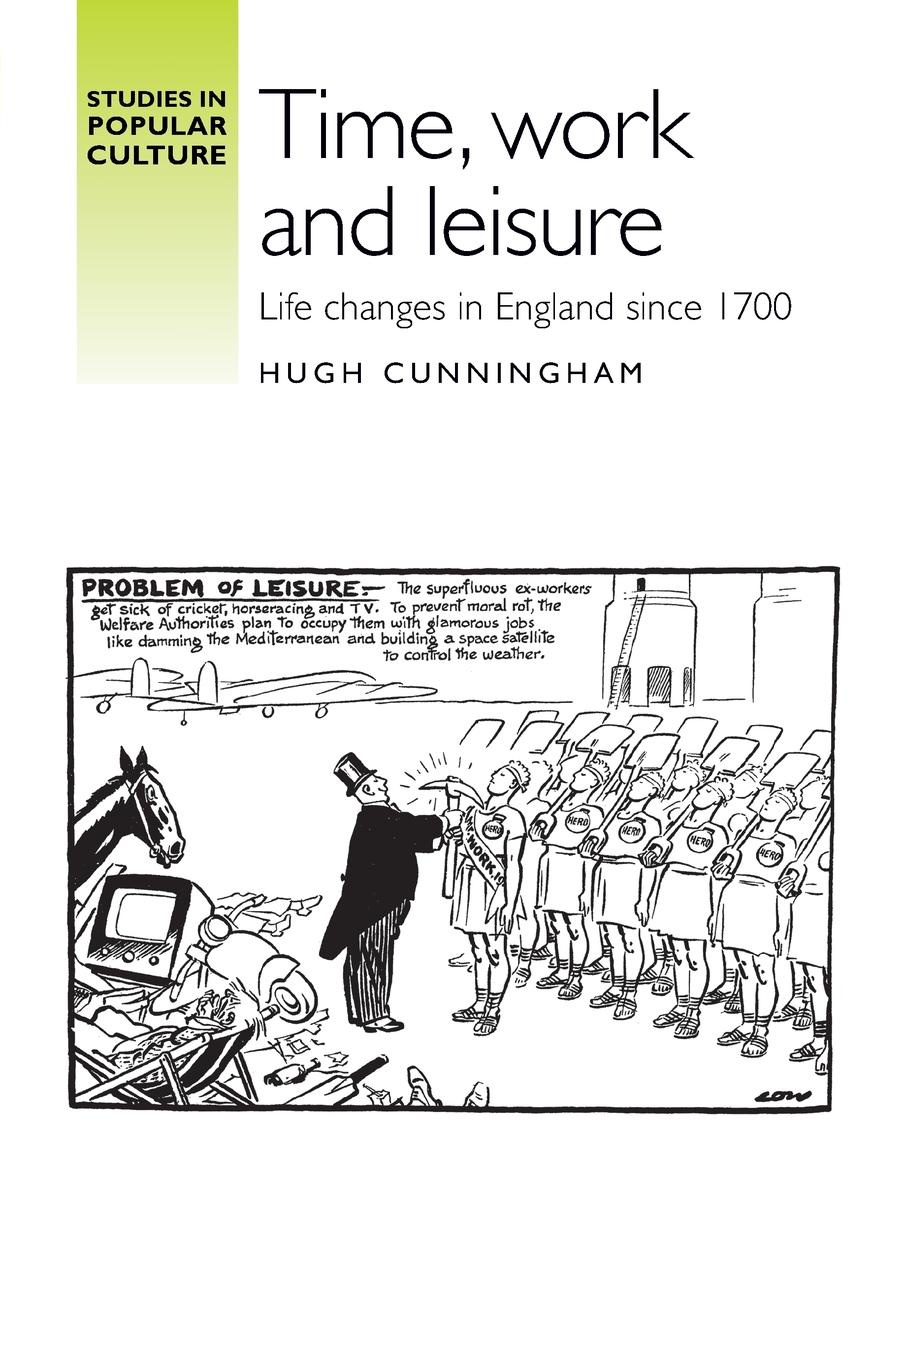 Time, Work and Leisure. Life Changes in England Since 1700. Hugh Cunningham